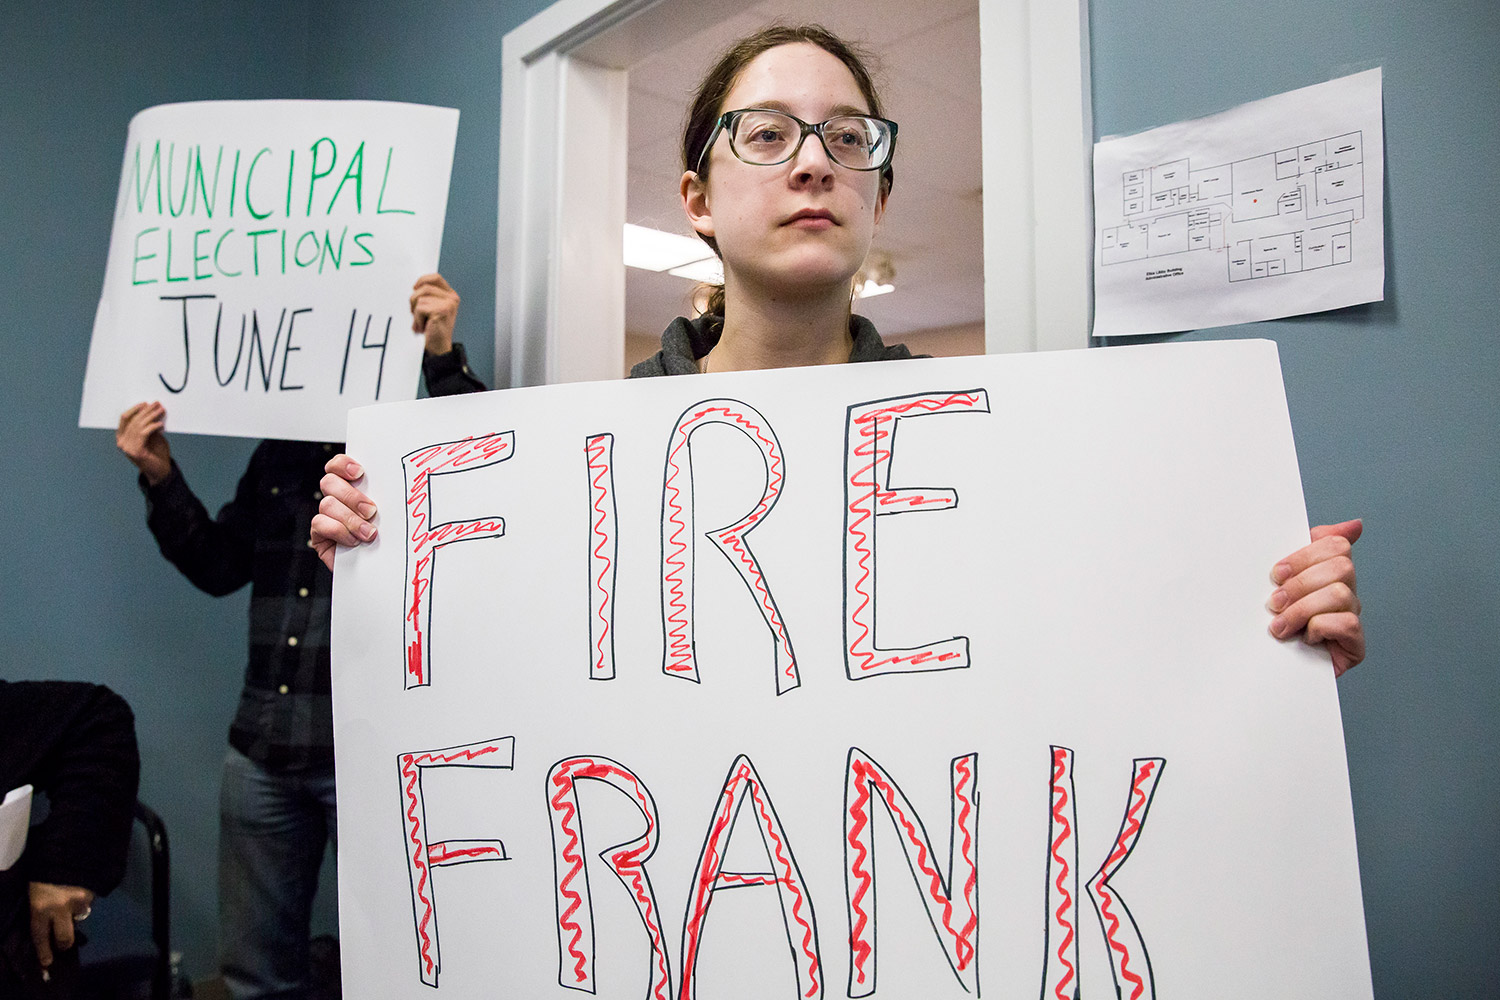 Victoria Hugo-Vidal of Buxton holds a protest sign during a SAD 6 school board meeting Monday. Last week, the board determined that Frank Sherburne had violated the district's nepotism policy by hiring his son for an ed tech position, but the board did not take any action against Sherburne.